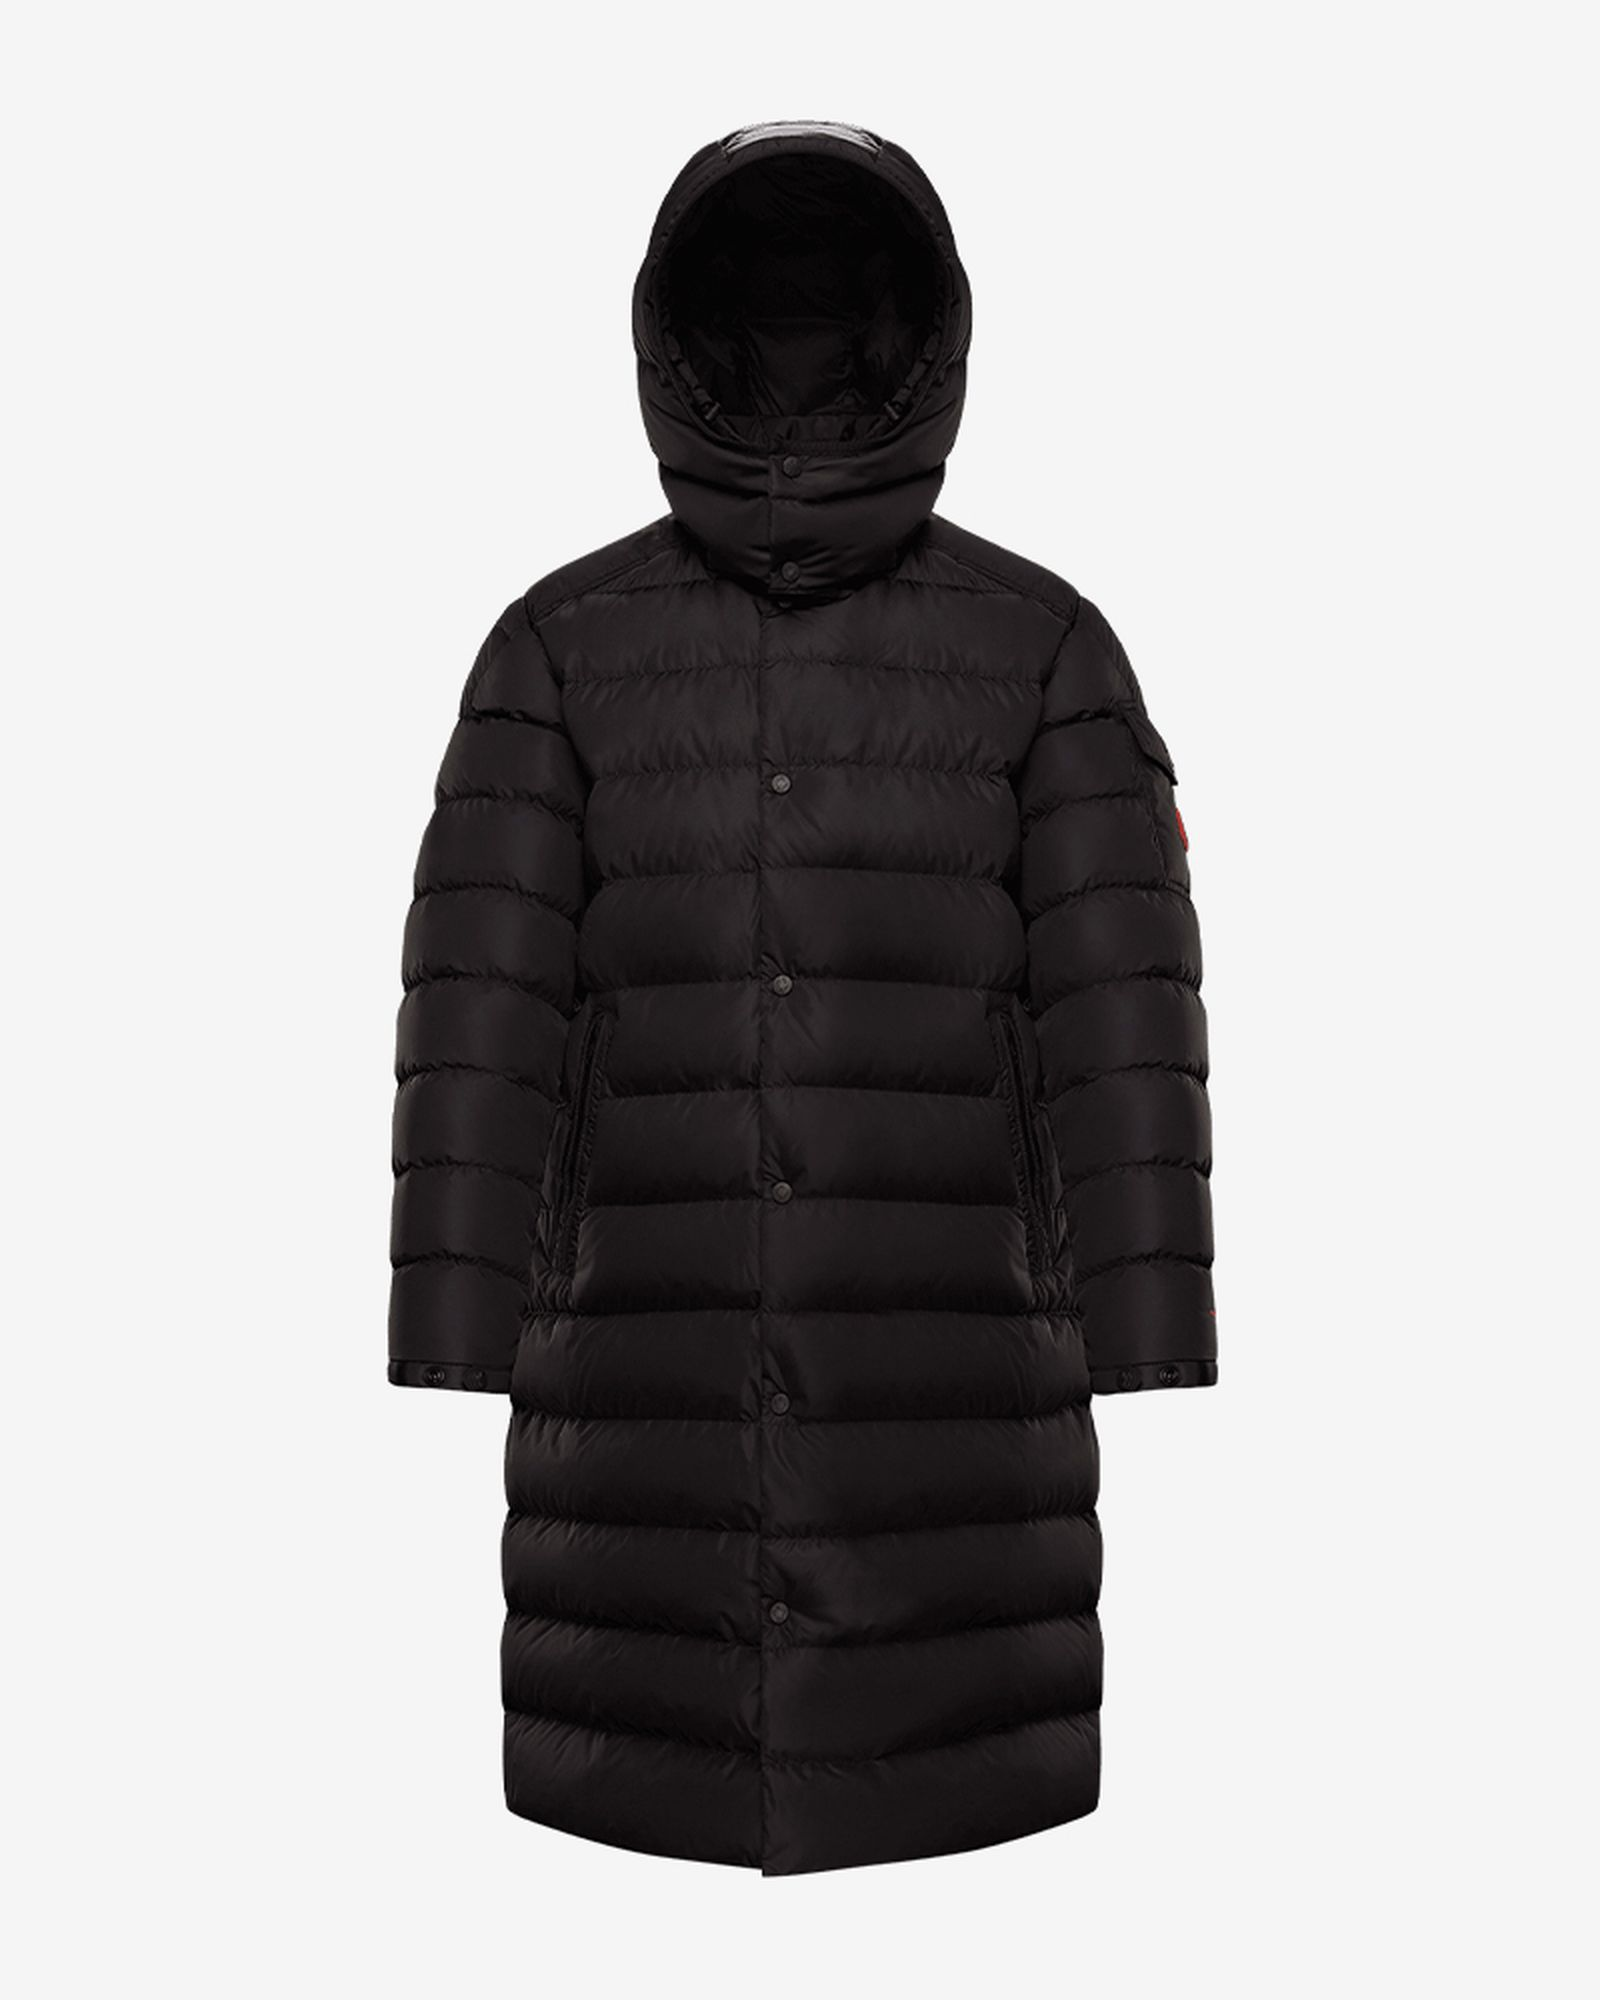 sustainable-moncler-jackets-09